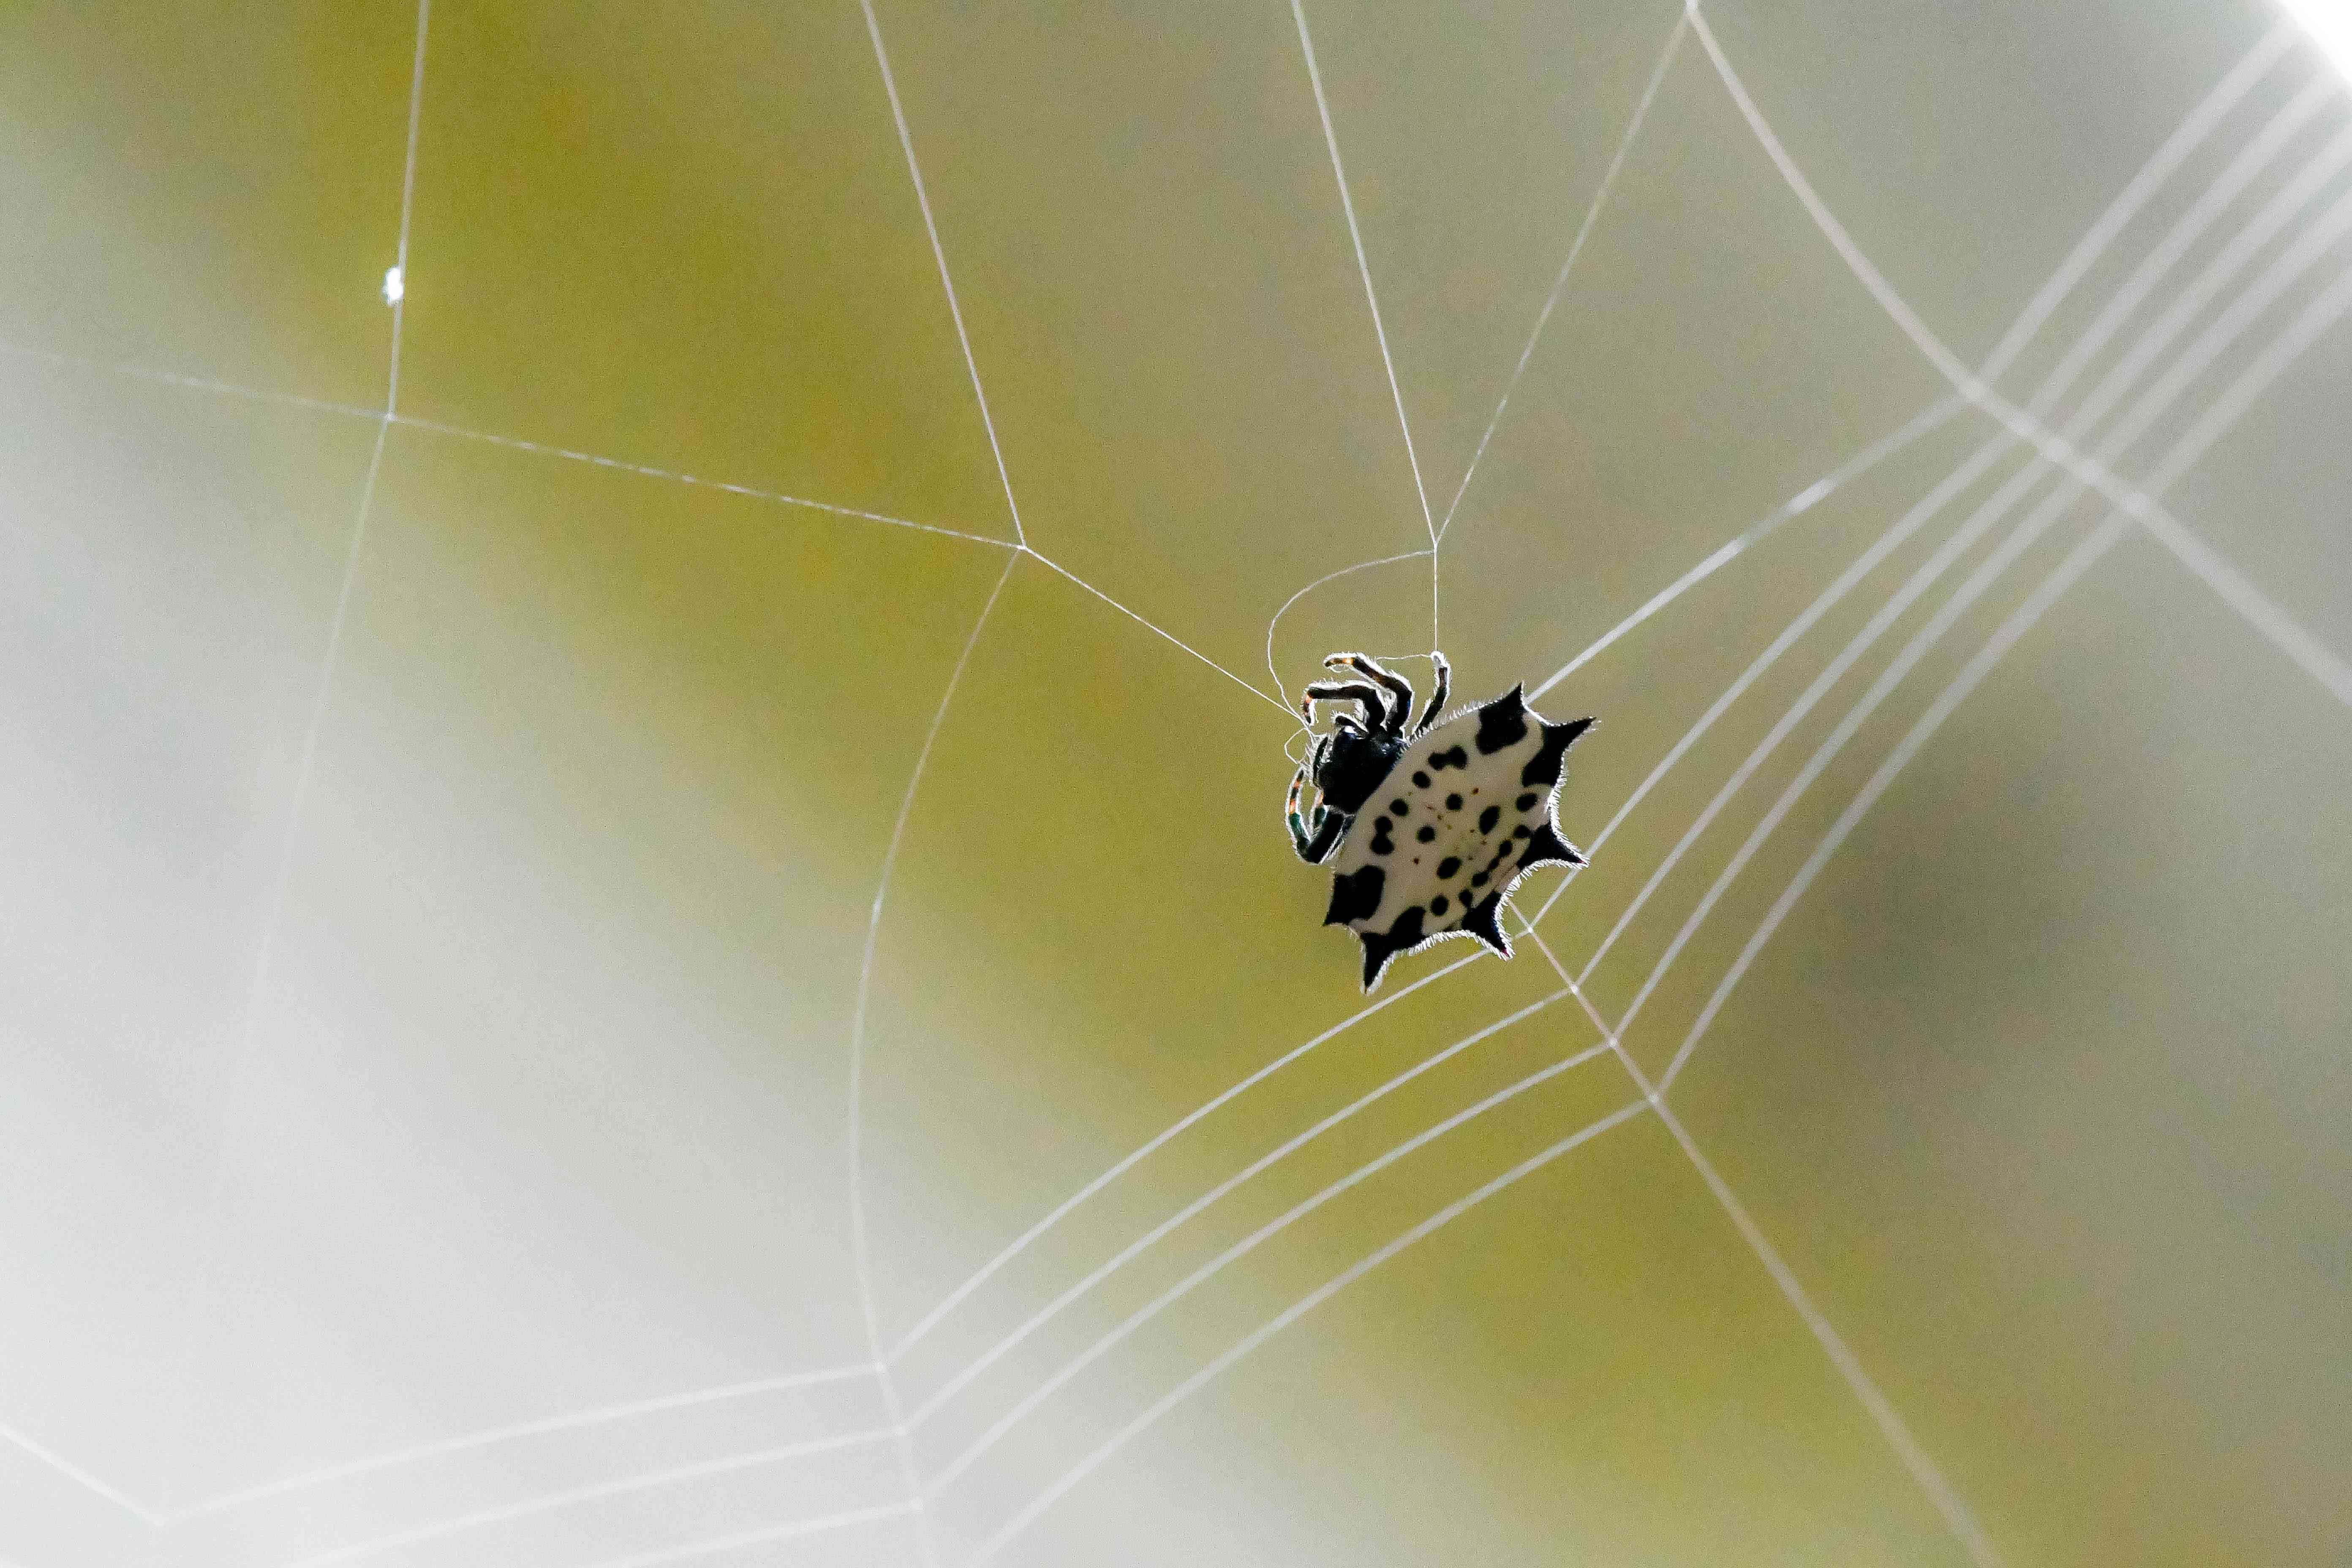 spiny-backed orb weaver spider in web